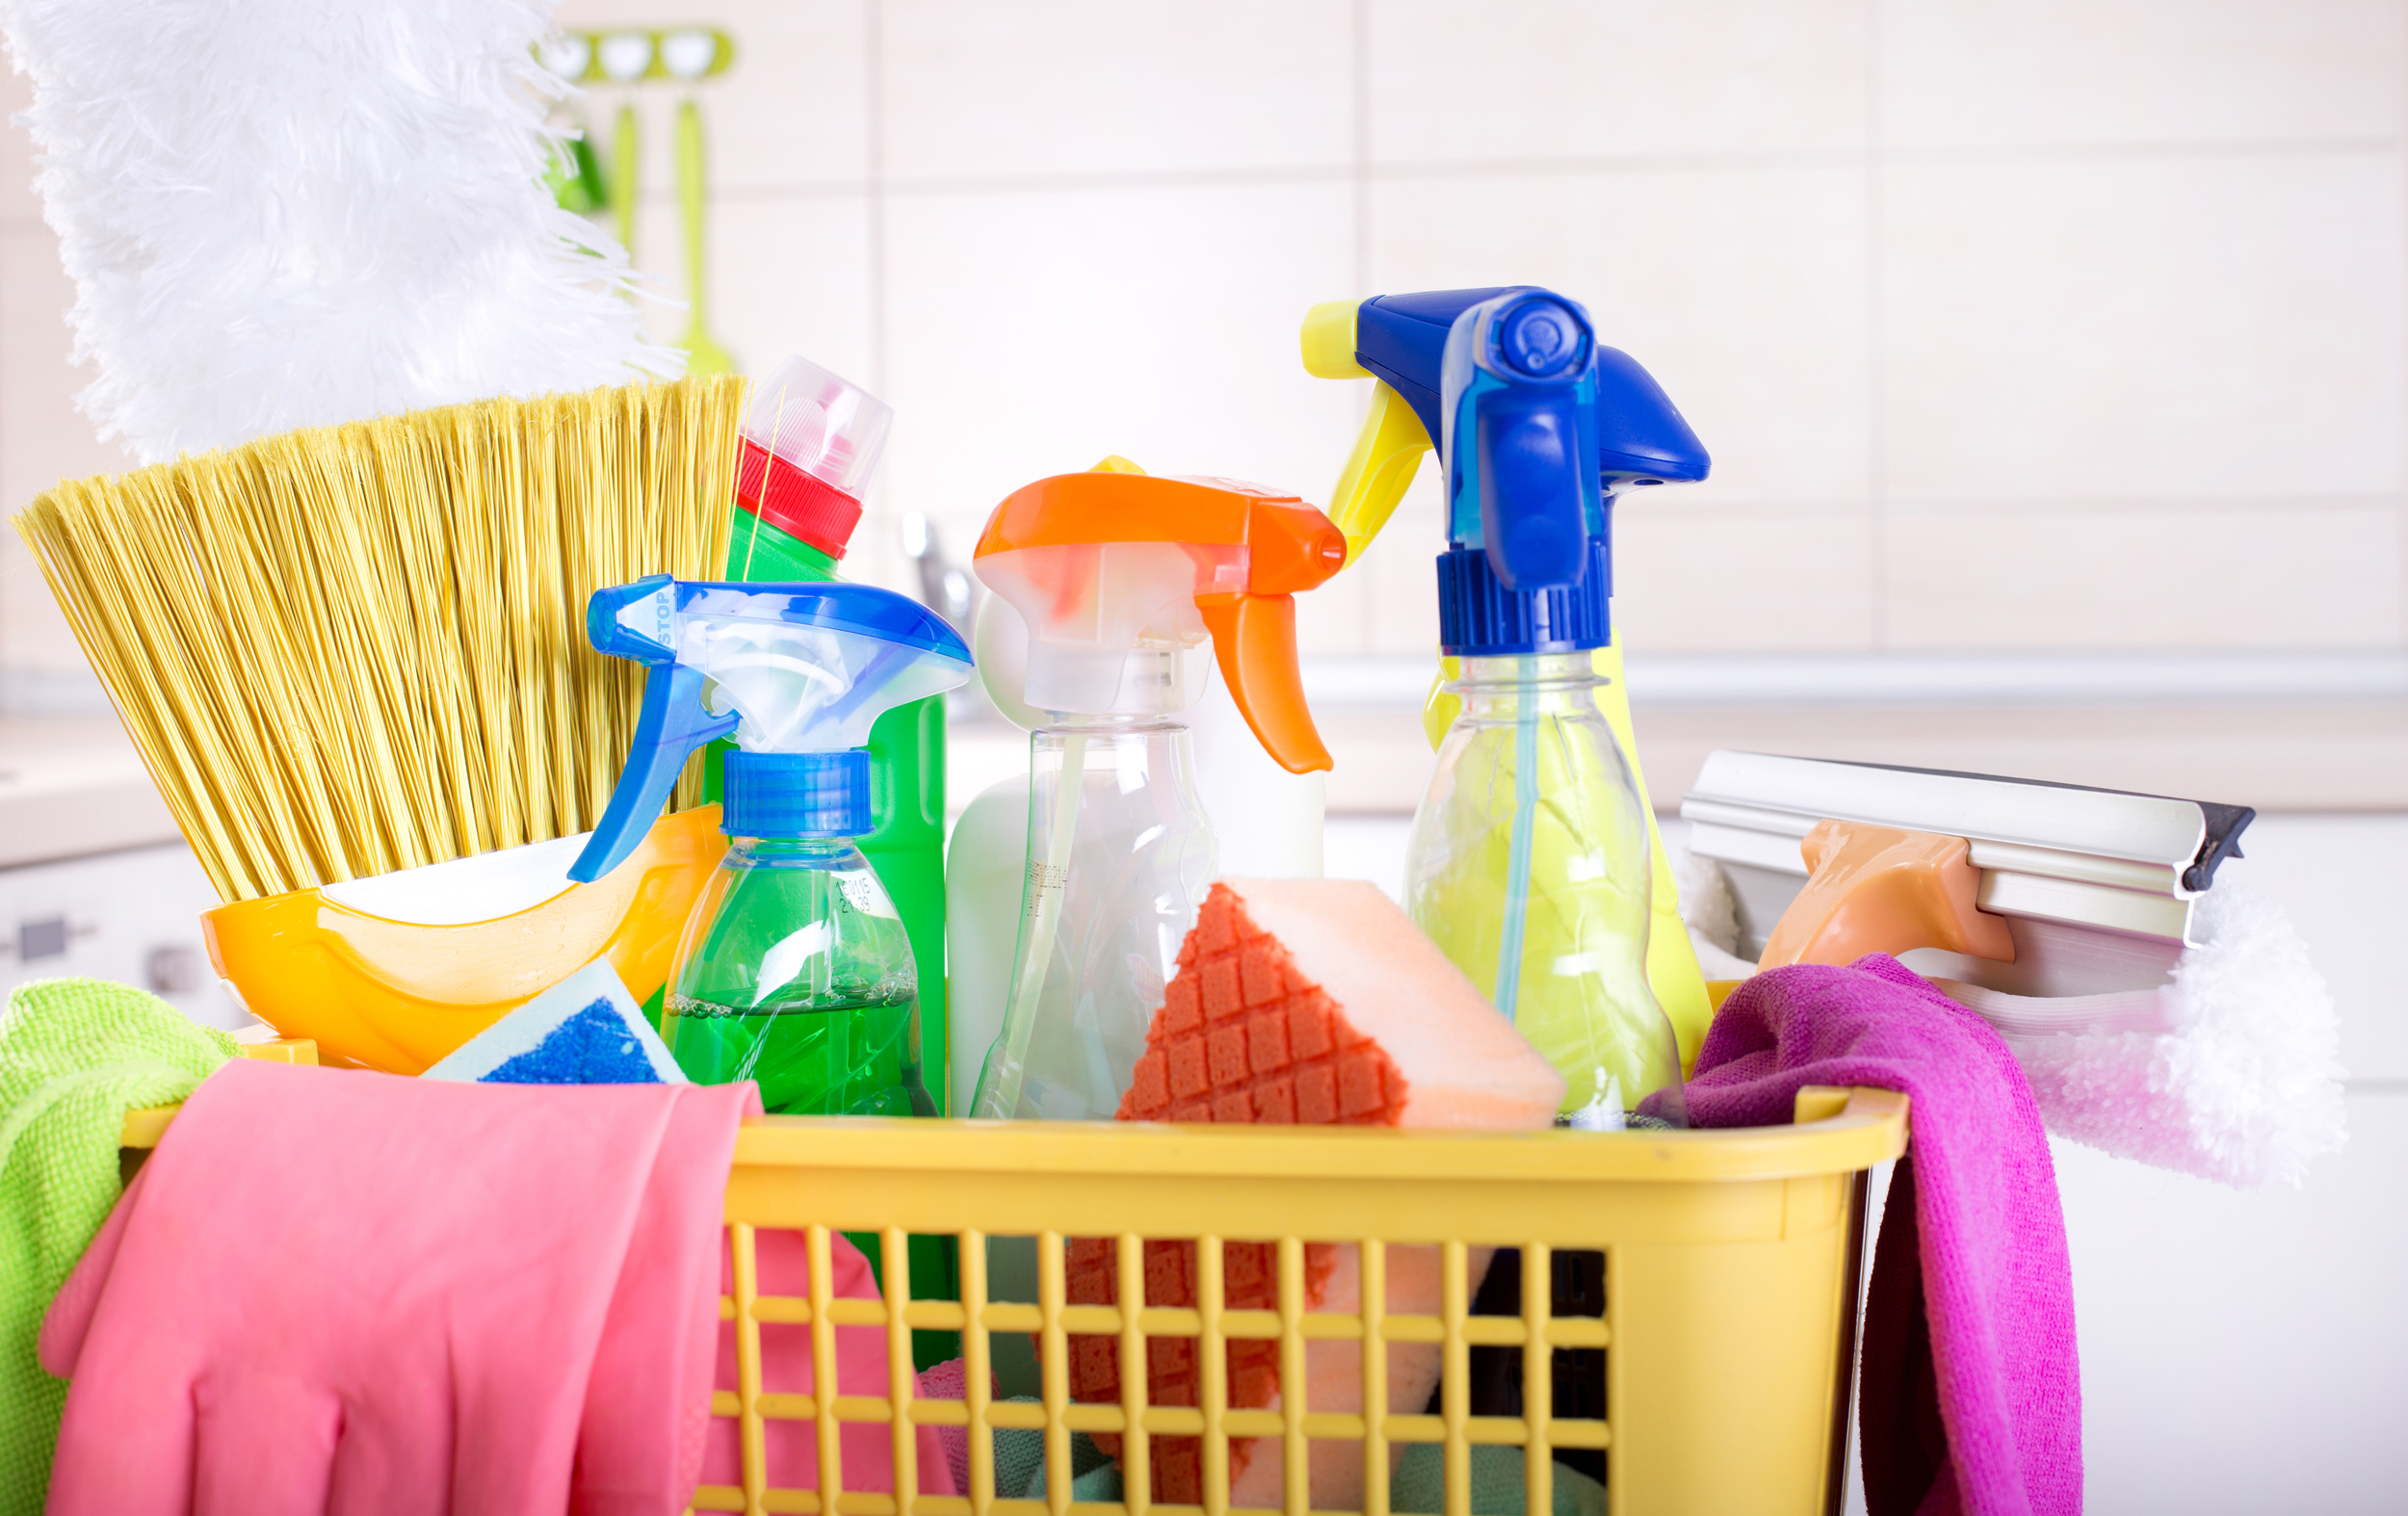 Cleaning this weekend? This interactive room-by-room guide will make it easier